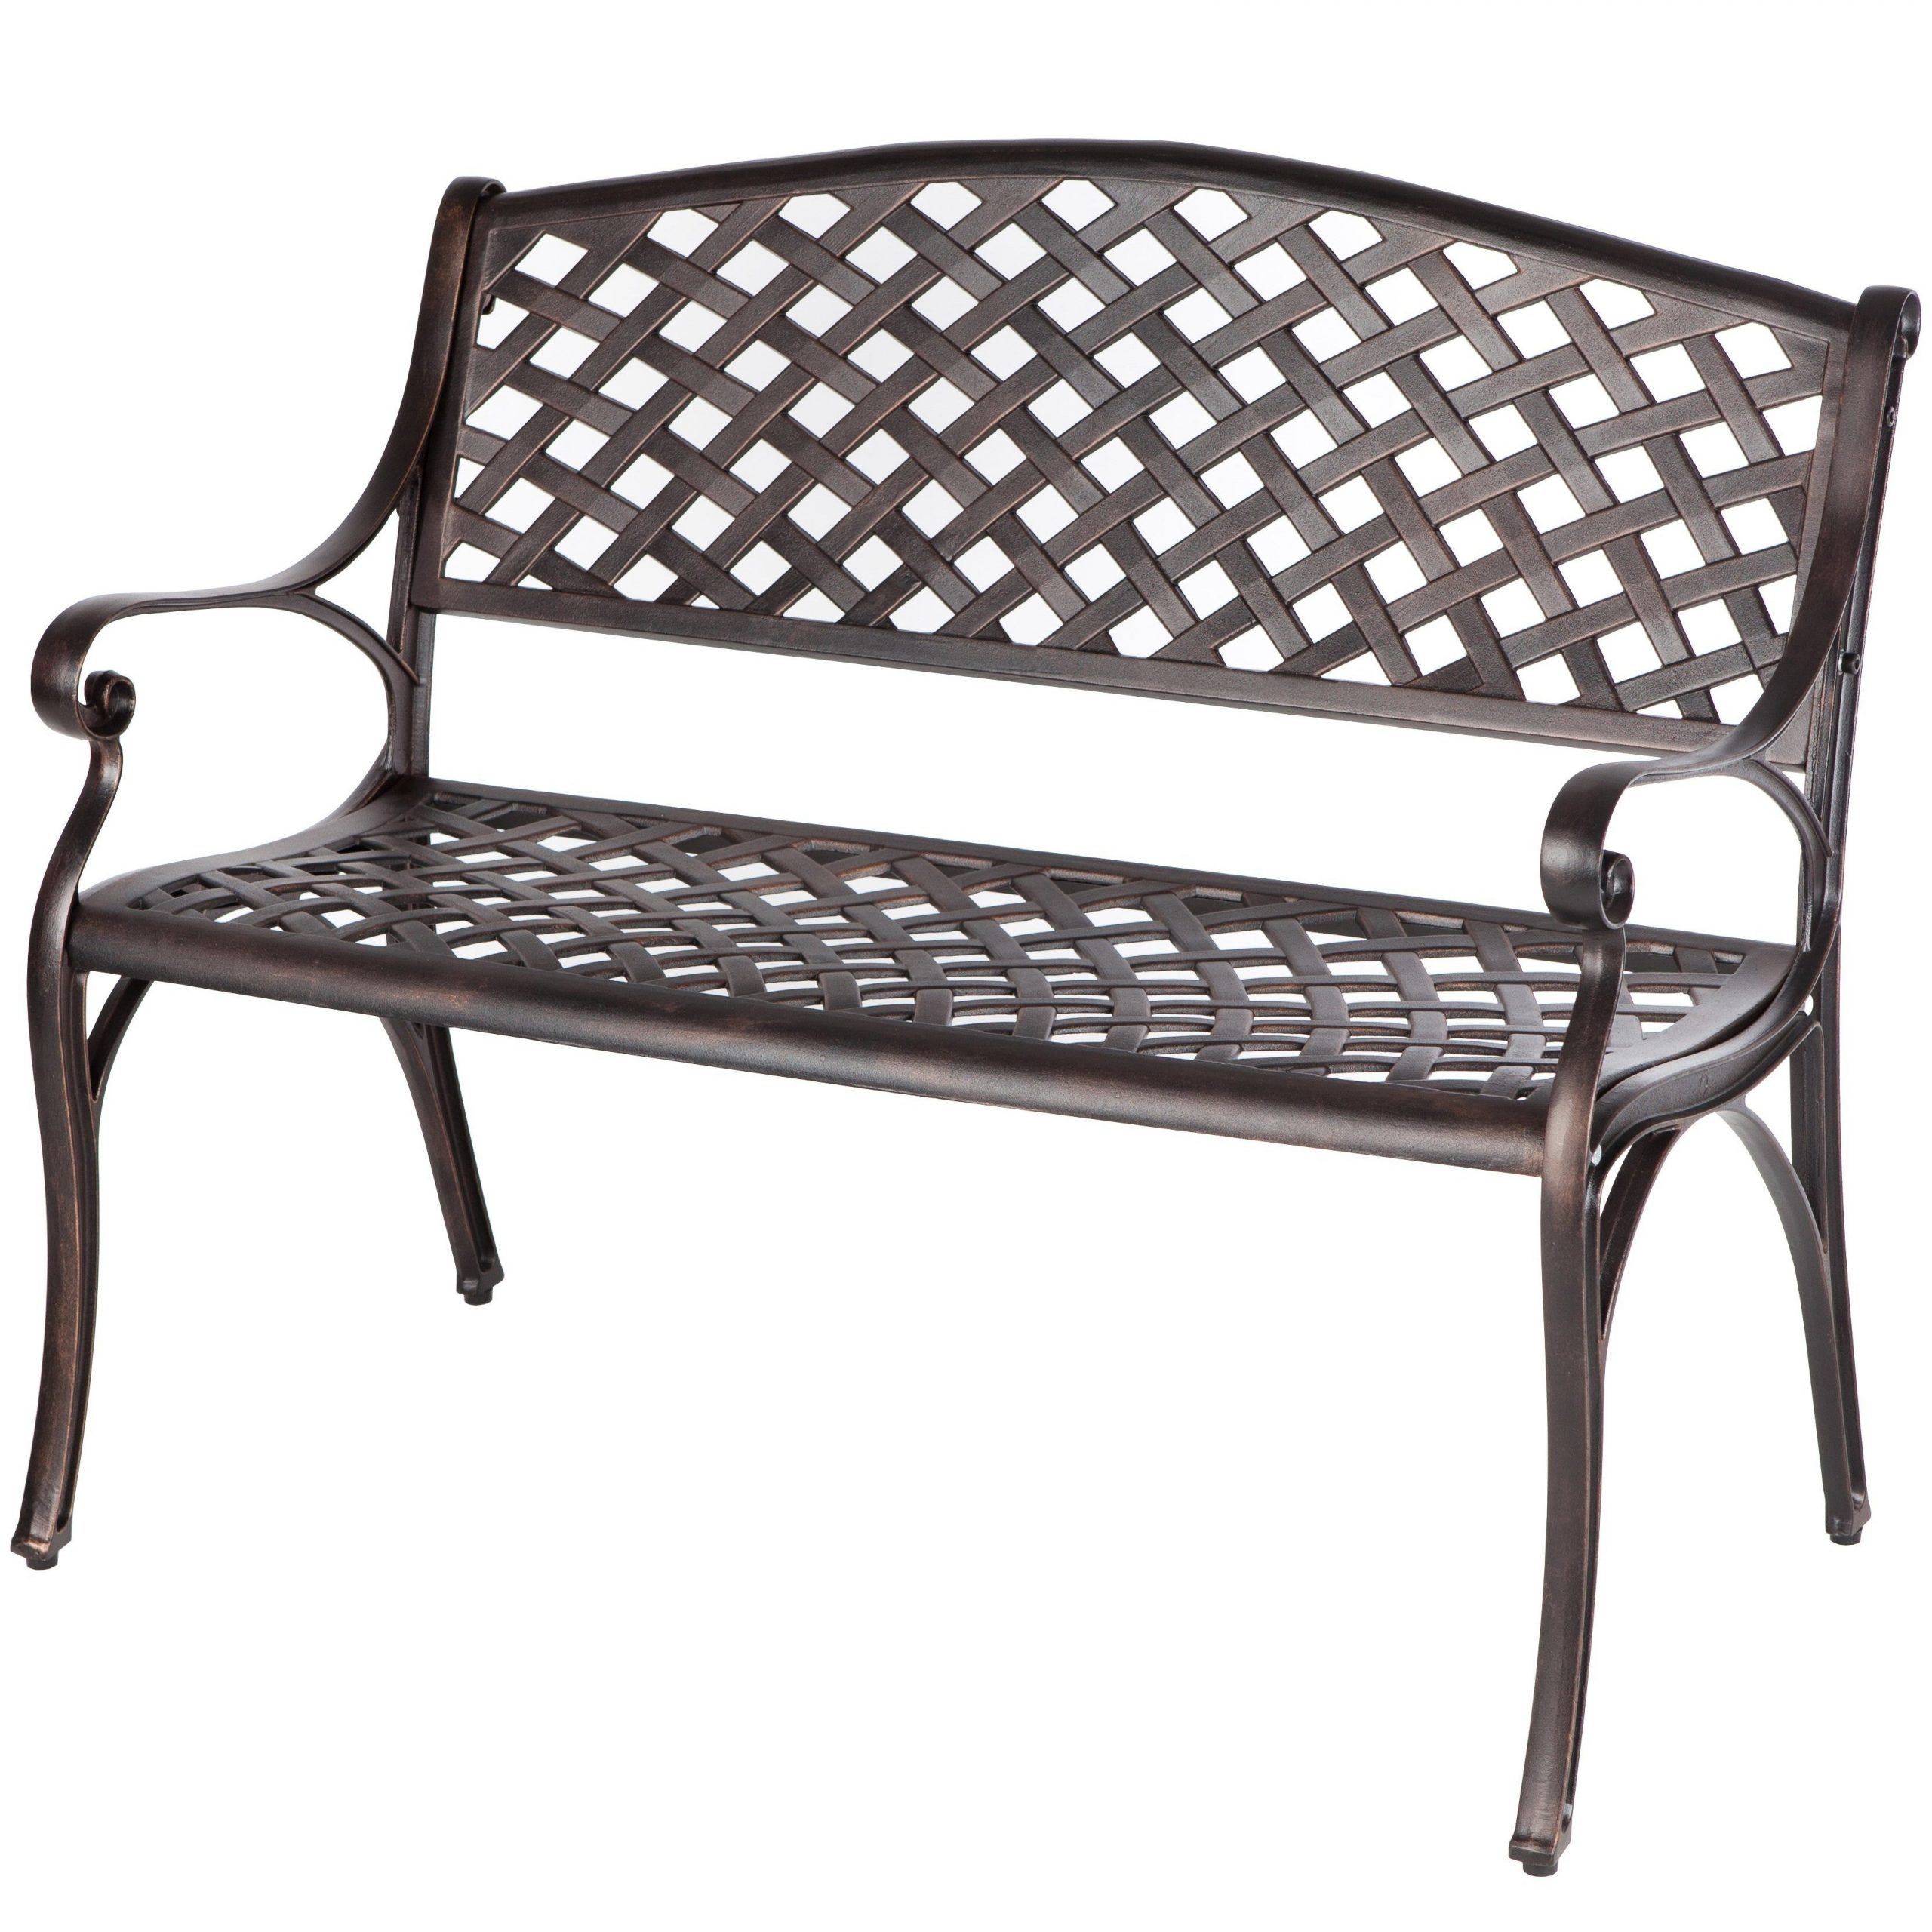 Patio Chairs, Swings & Benches Yard, Garden & Outdoor Living In Well Liked 2 Person Antique Black Iron Outdoor Swings (View 24 of 30)